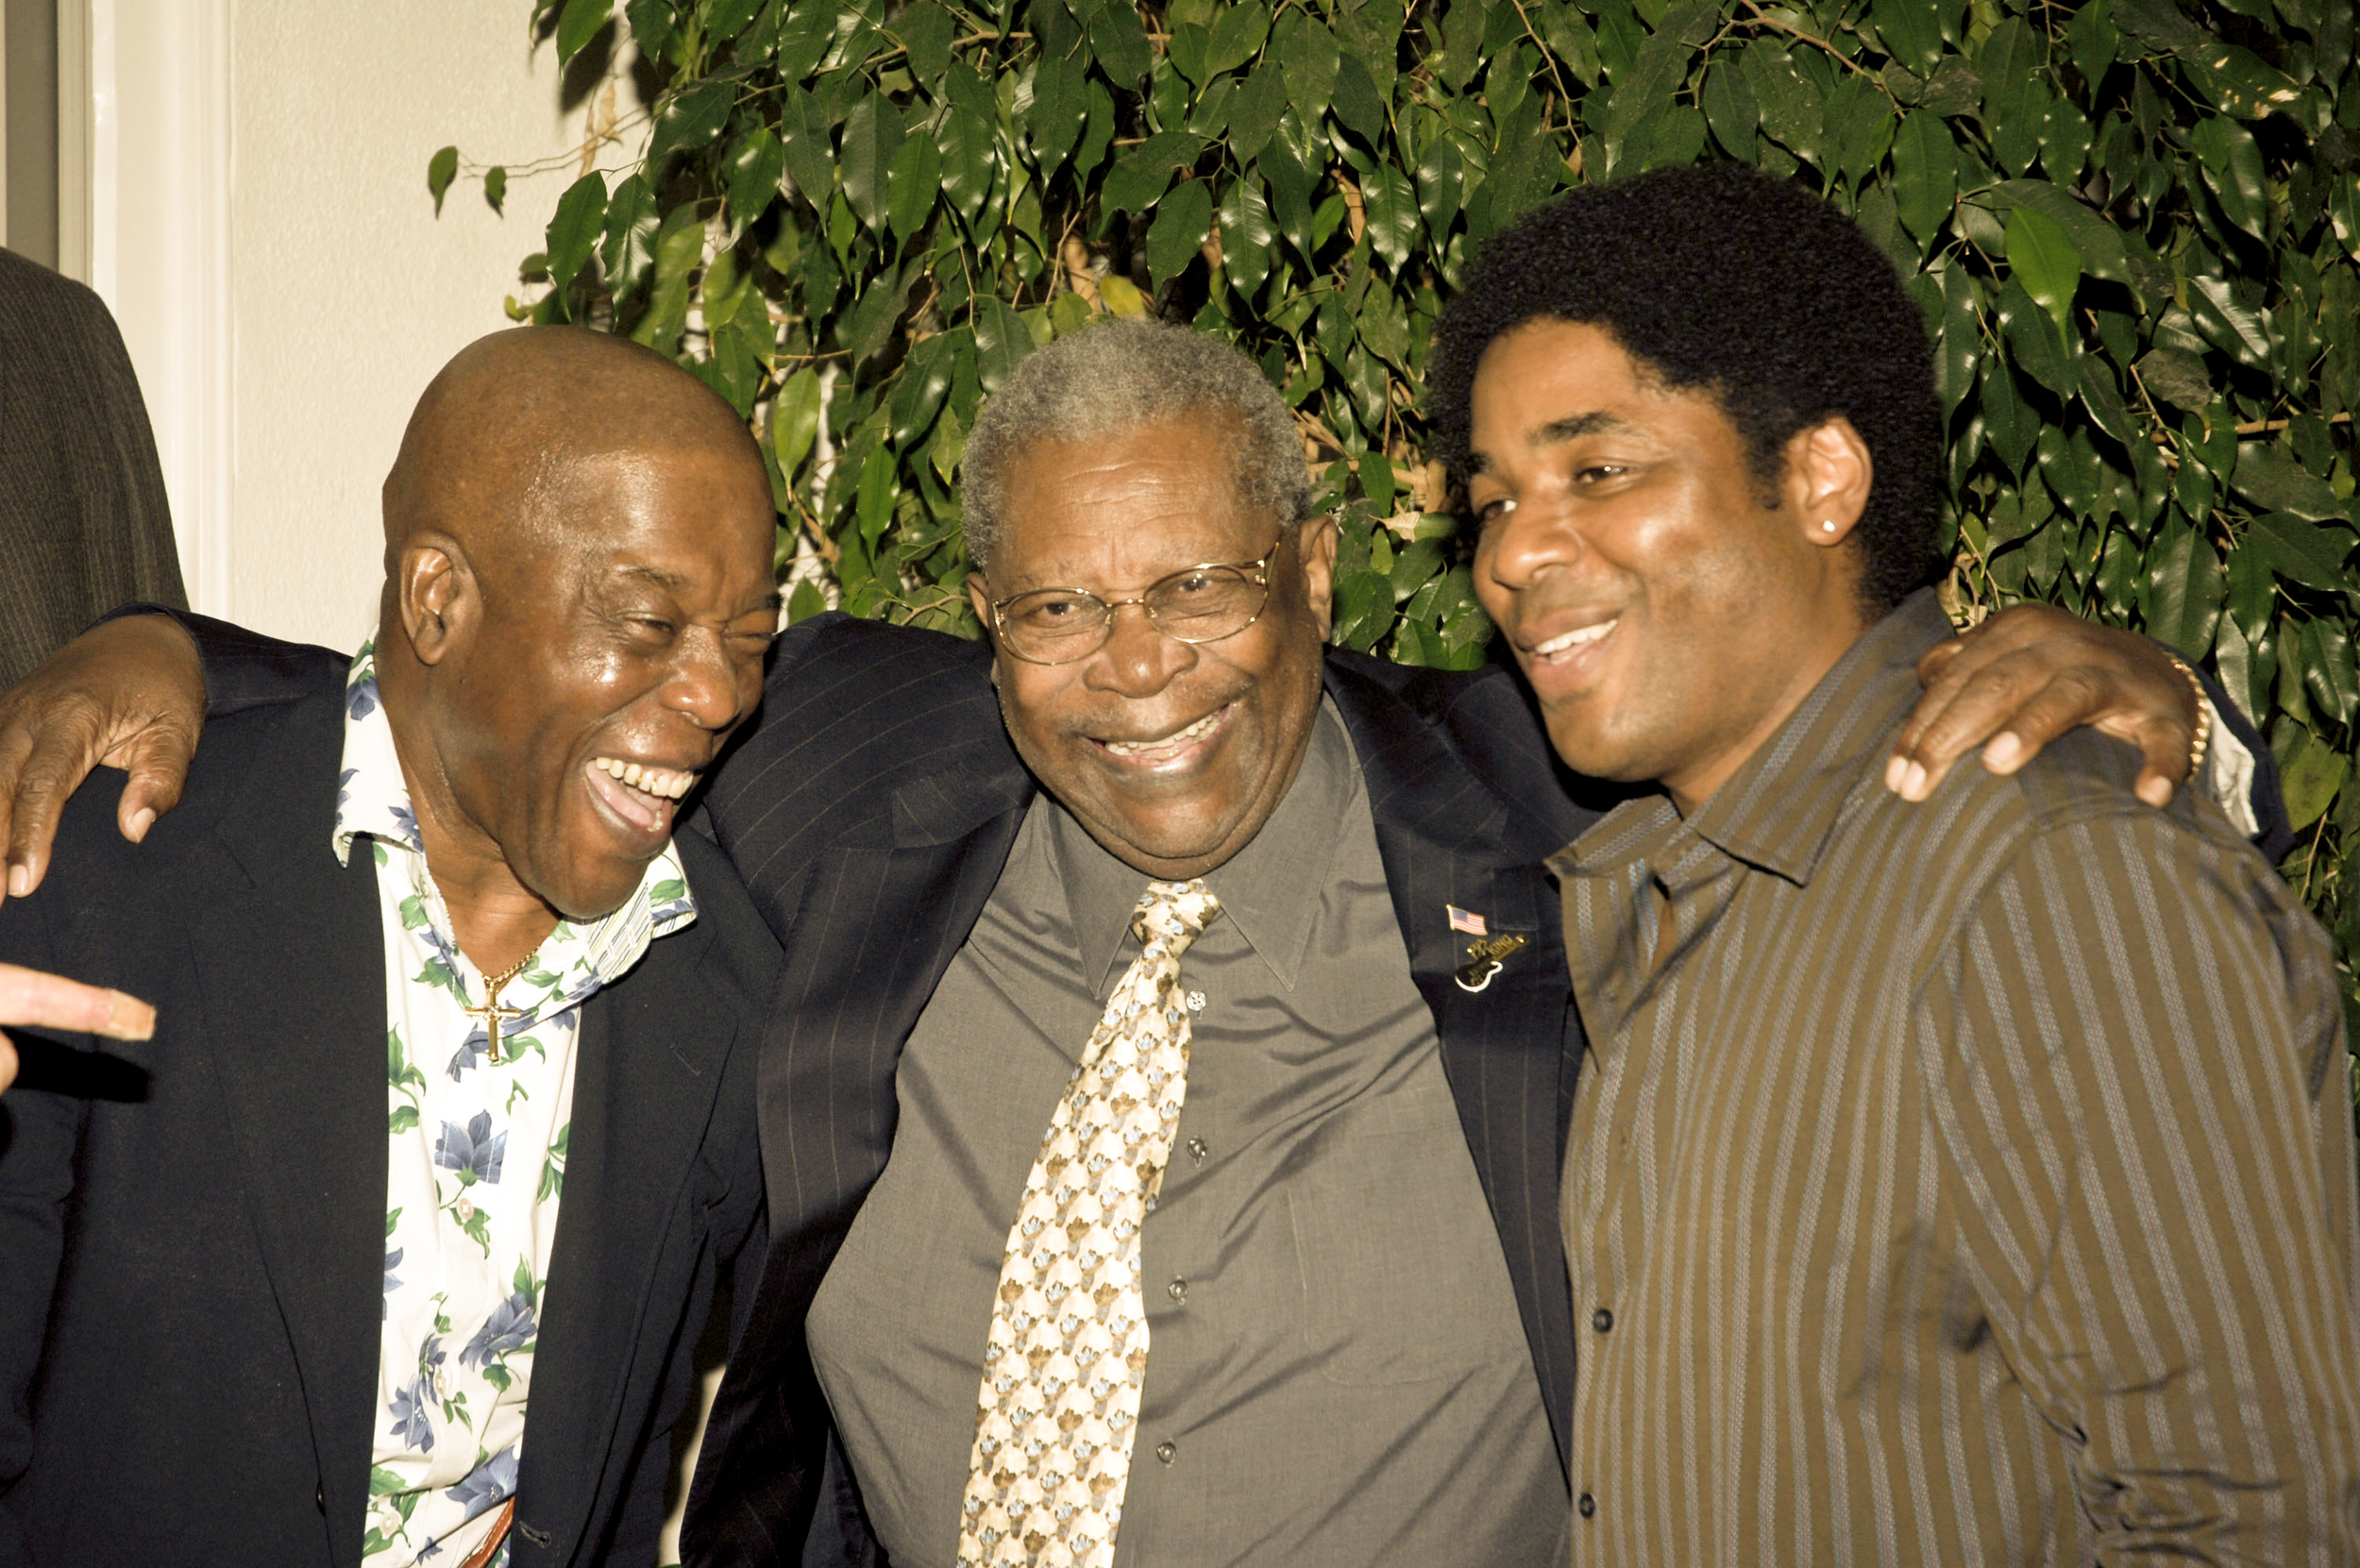 Buddy Guy, B.B. King, Chris Thomas King 2005.